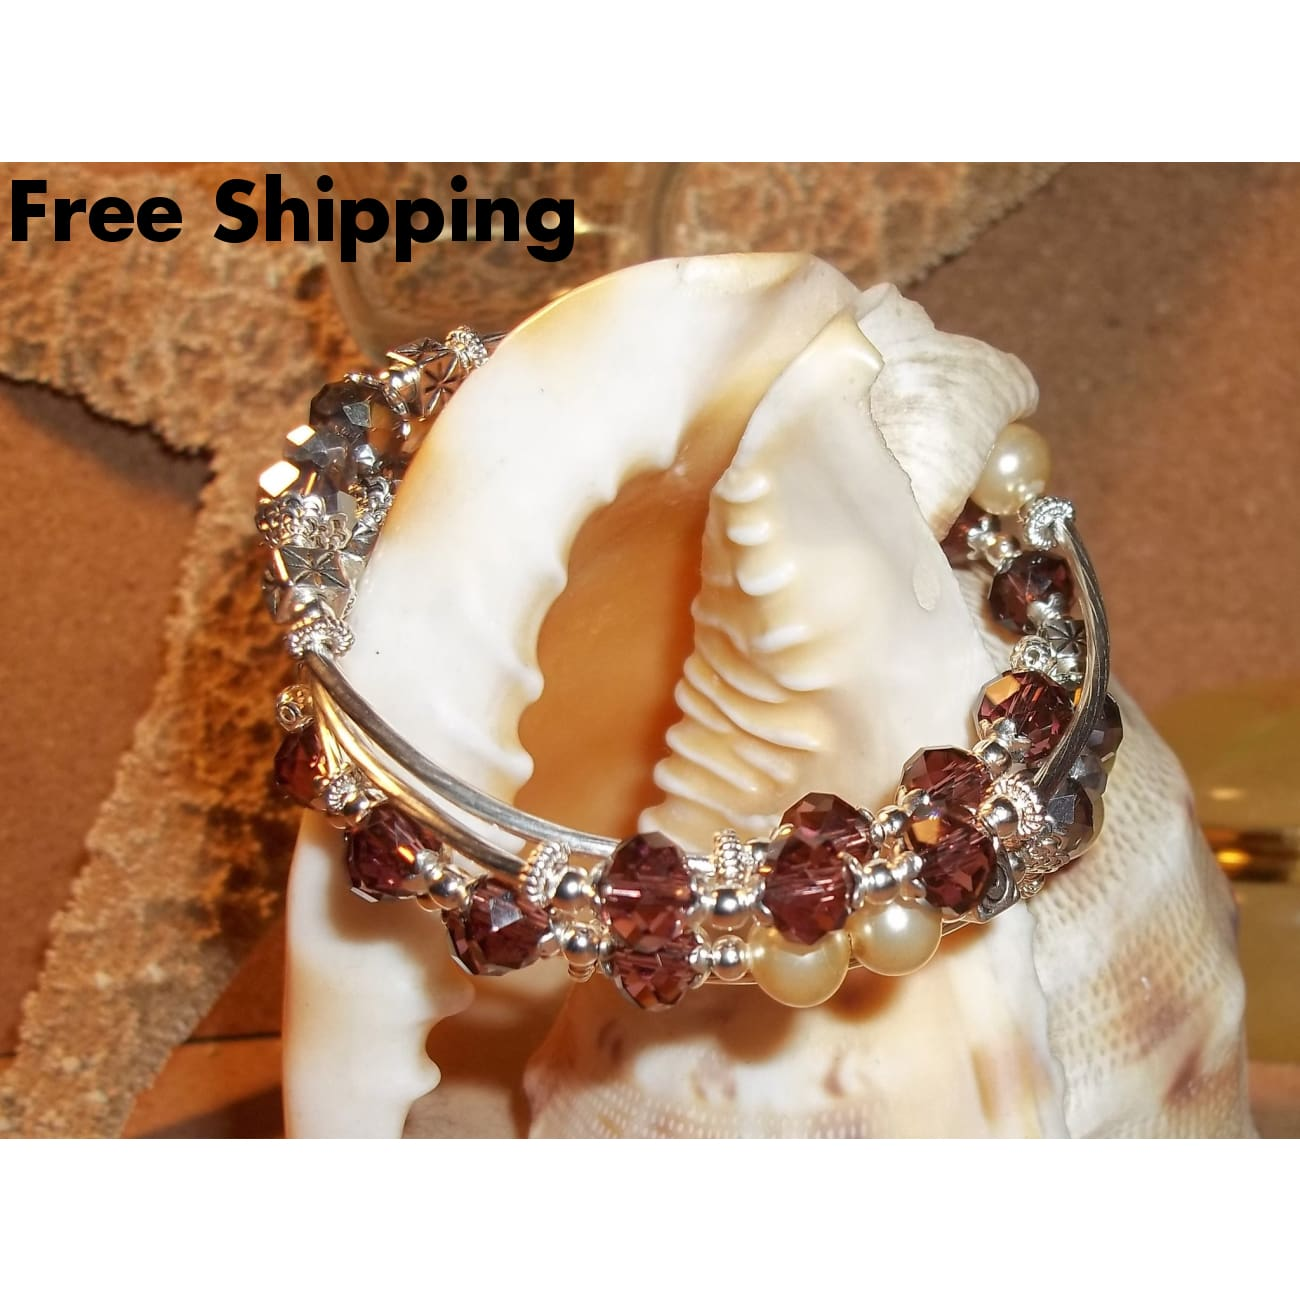 Rose & Silver Swarovski Crystals W/ Cream Pearl Bead Hand Crafted Silver Wrap Bracelet - Bracelets